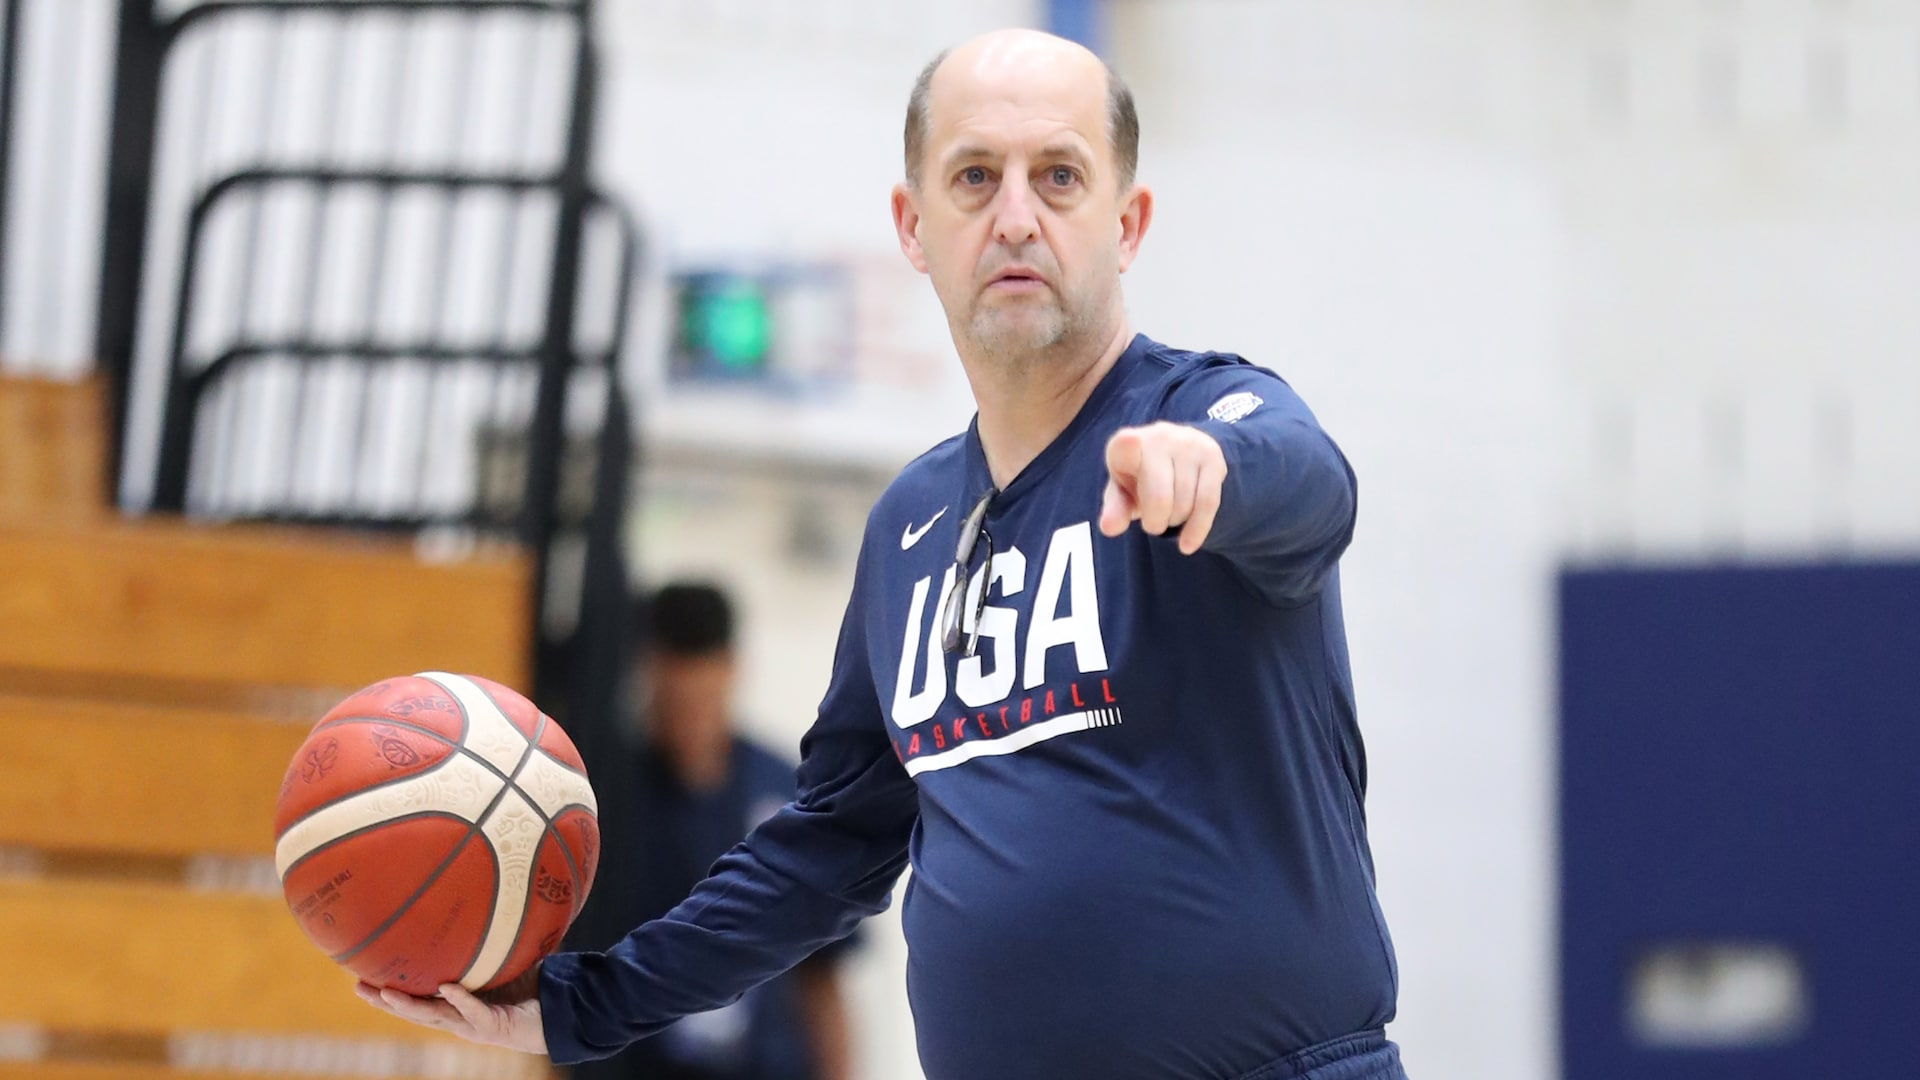 Reports: Jeff Van Gundy talking with Rockets about coaching job